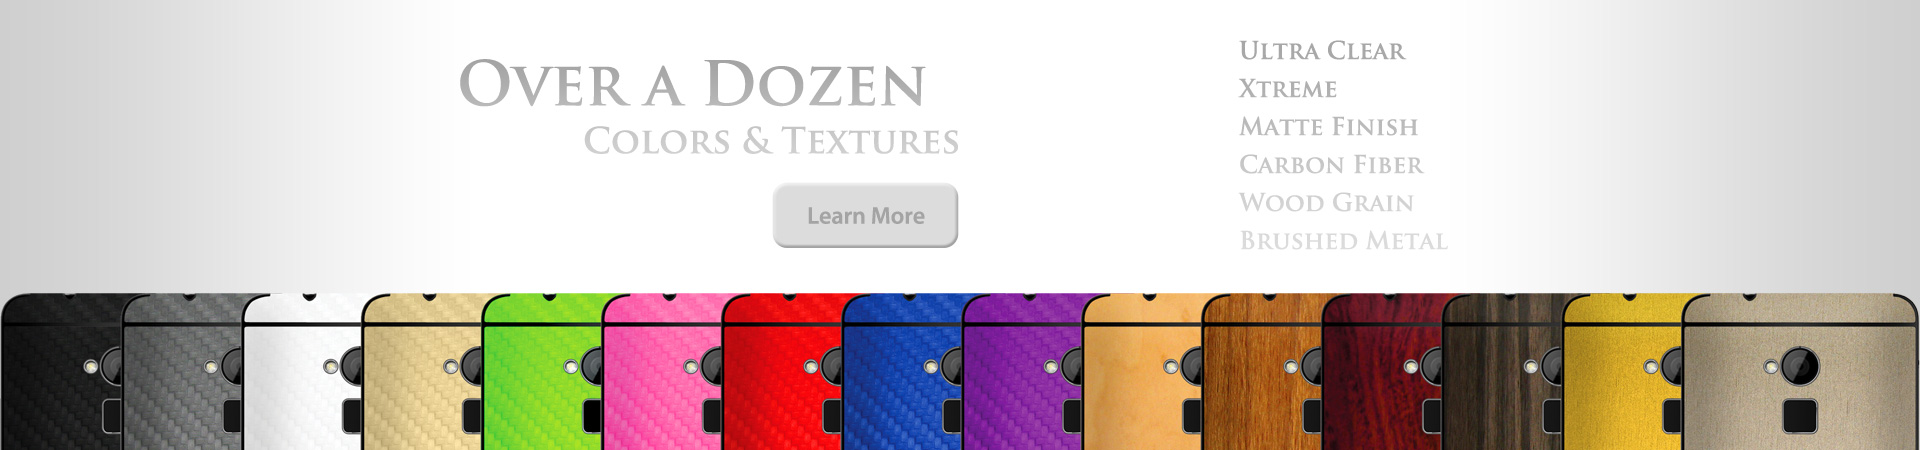 Over a dozen colors and textures to choose from